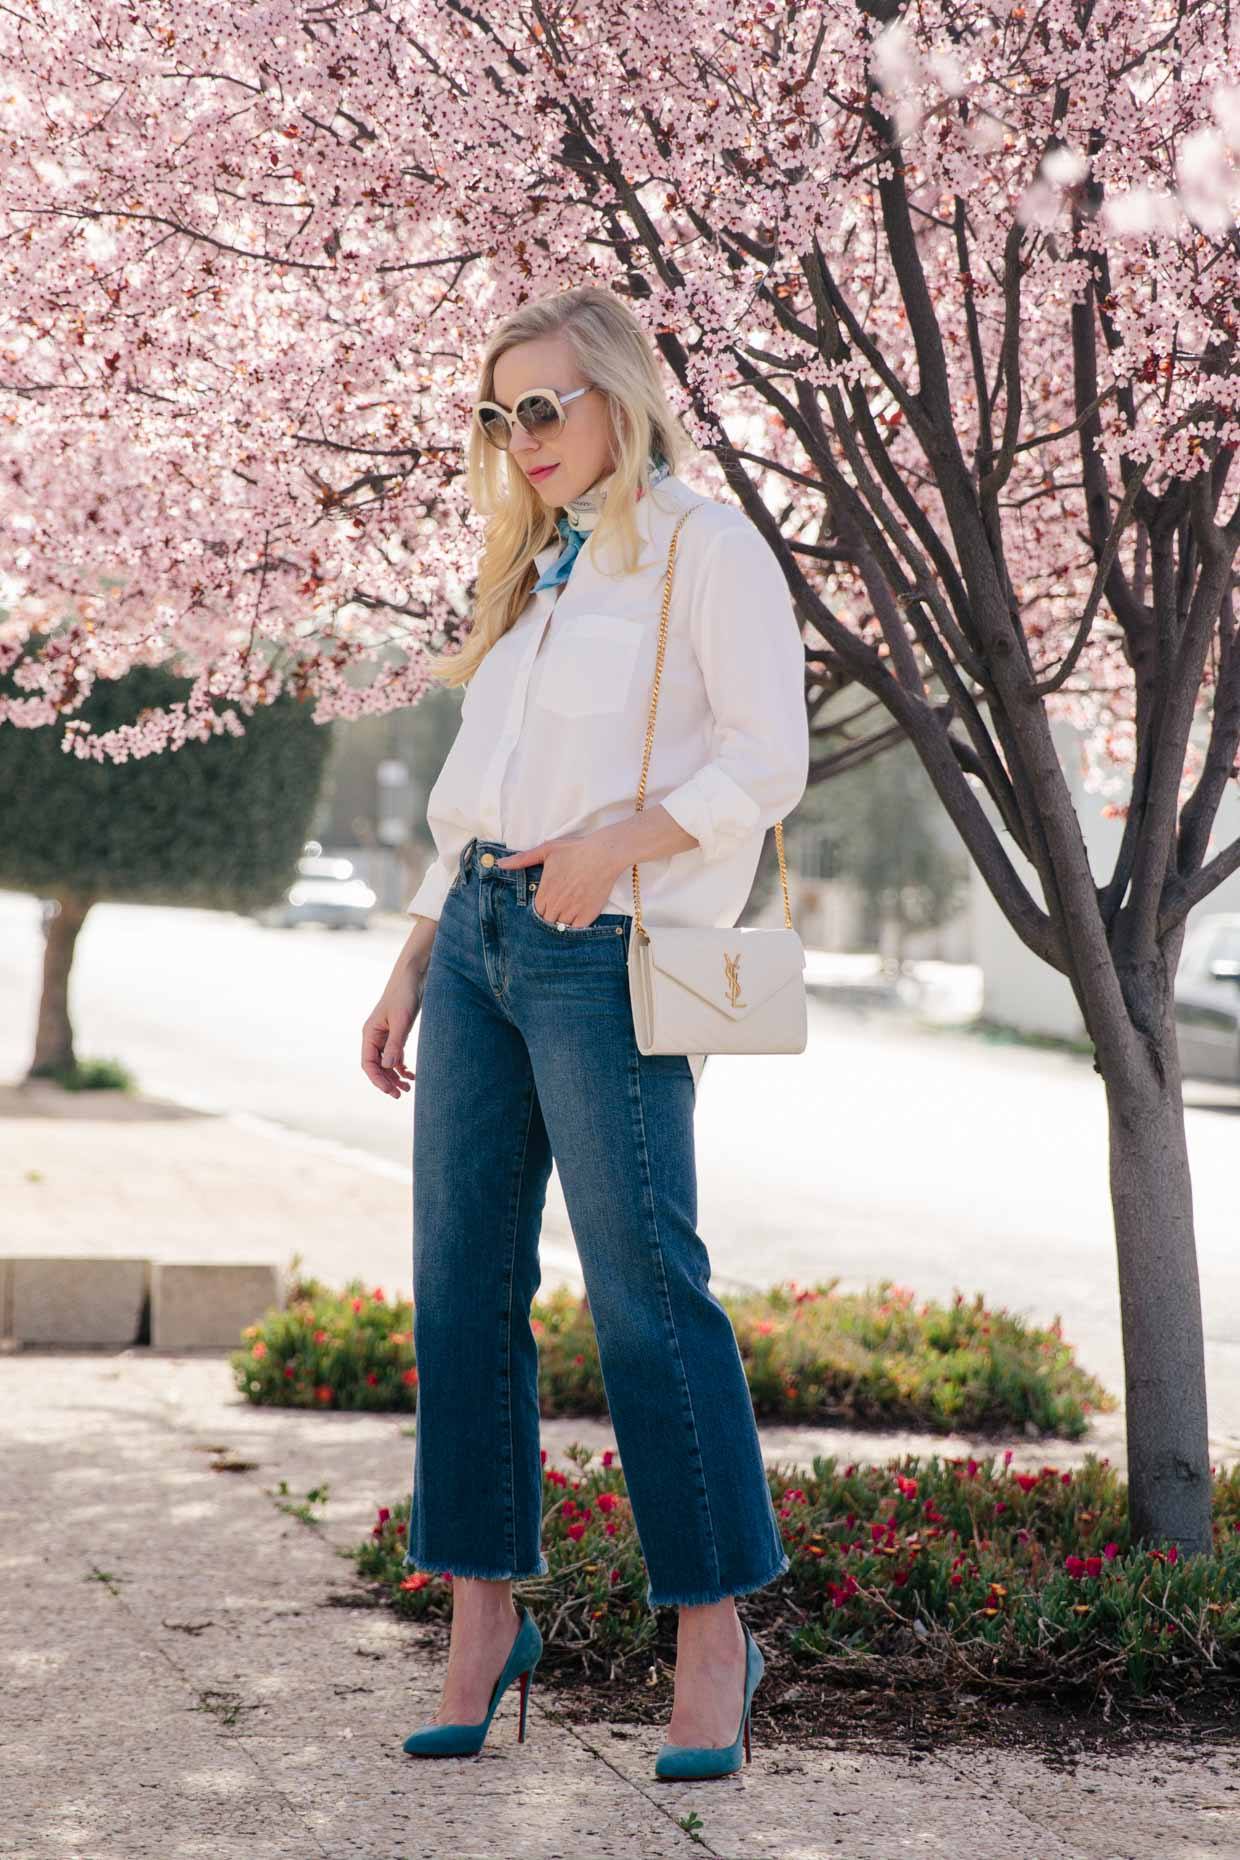 ce8cd6141f3  s Moda wears oversized white button down shirt with wide leg cropped jeans  and Christian Louboutin blue pumps chic spring outfit